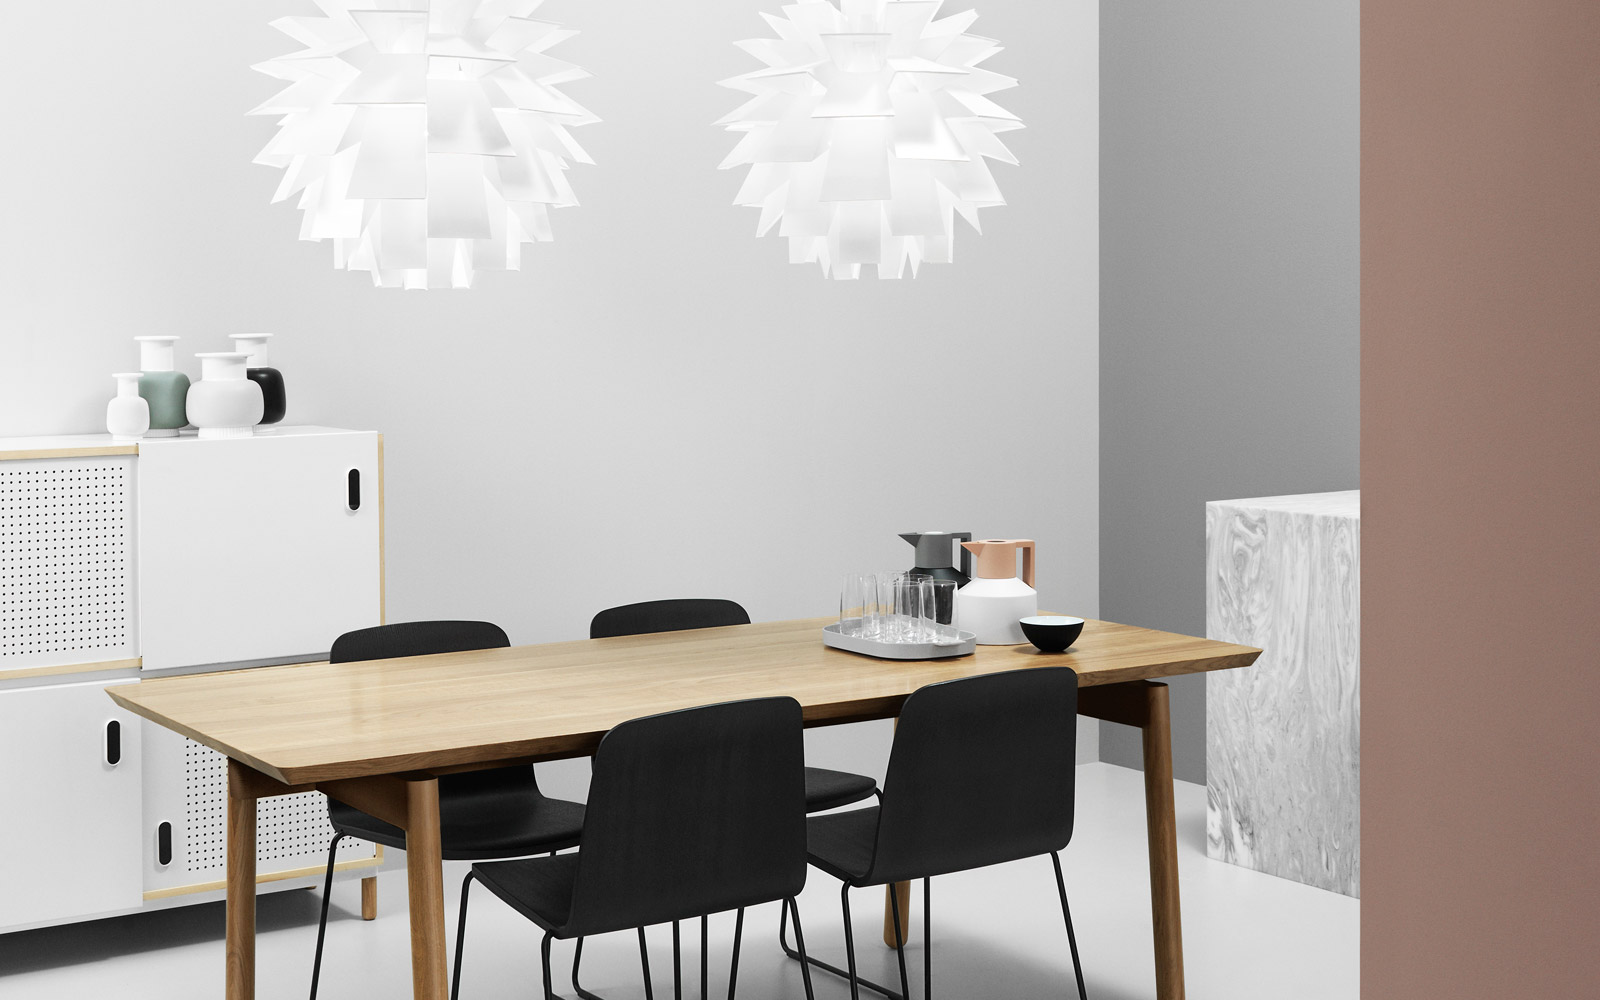 Nord table kontor interi r for Interior design agency copenhagen